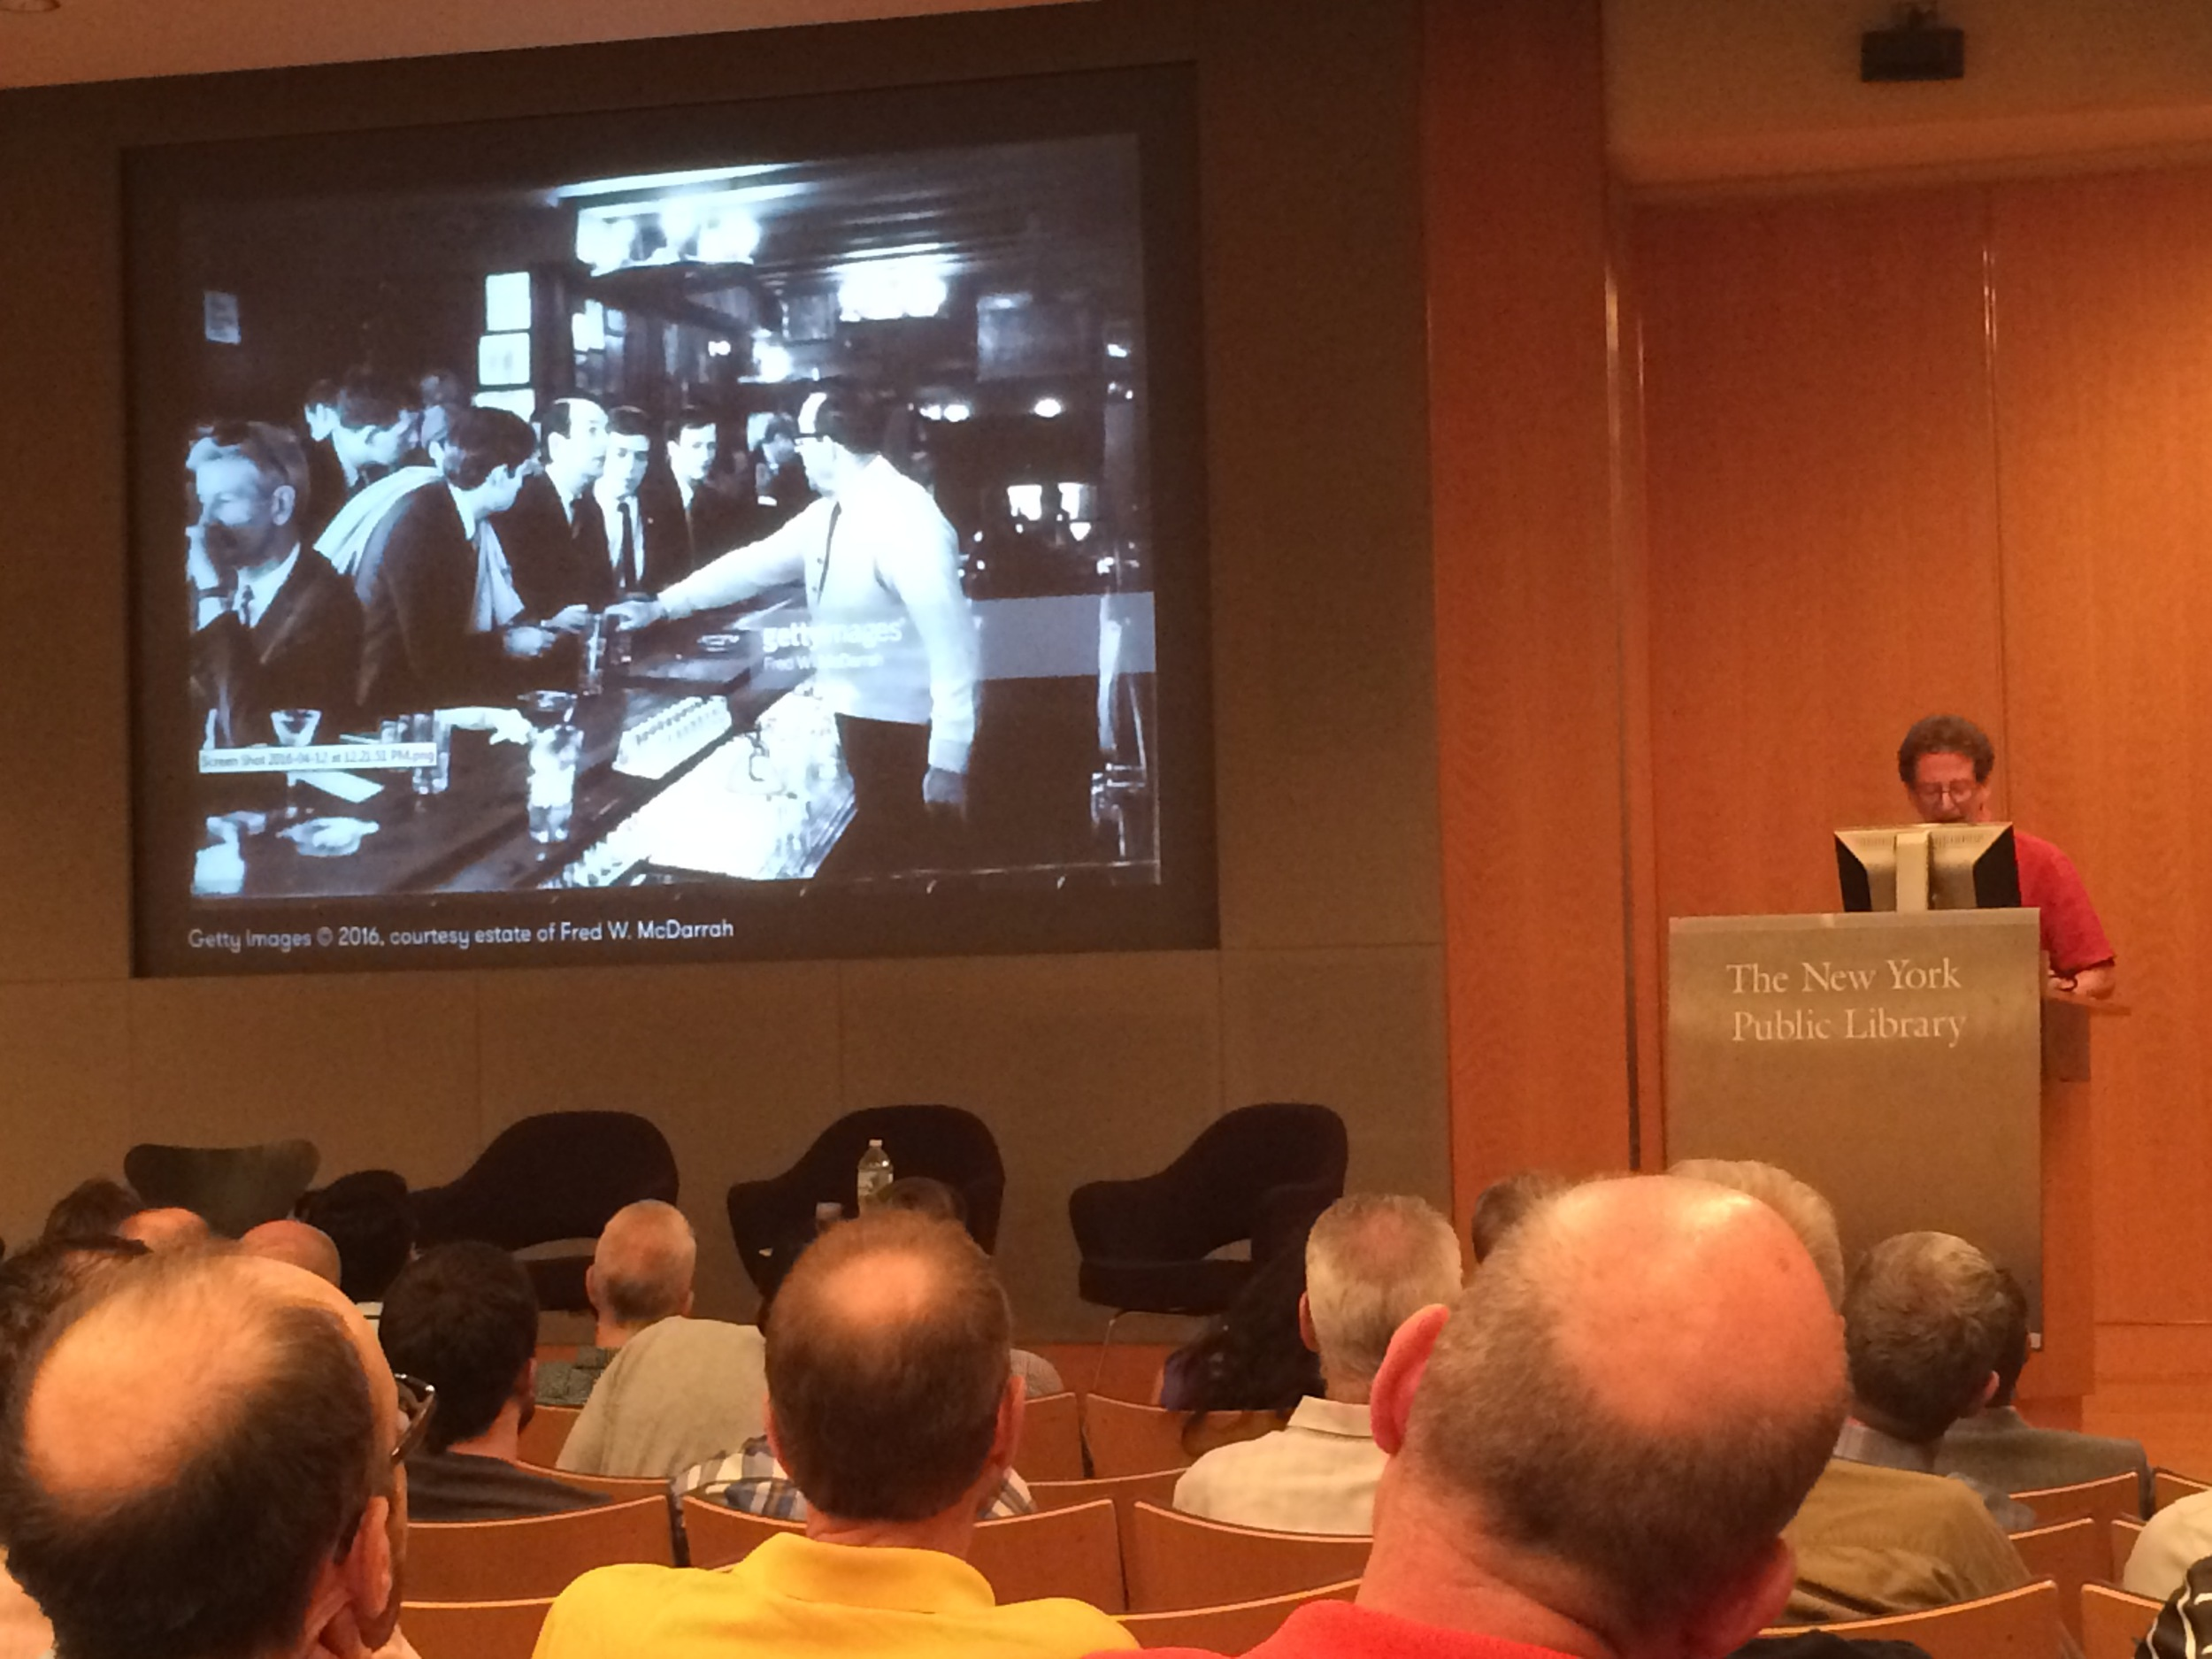 Andrew Dolkart, A Columbia professor and Director of the school's Historic Preservation Program, name checked Teddy McDarrah - grandson of the photographer we're here for - at an NYPL event tonight. See more photos on the Save The Village Tours Facebook page.